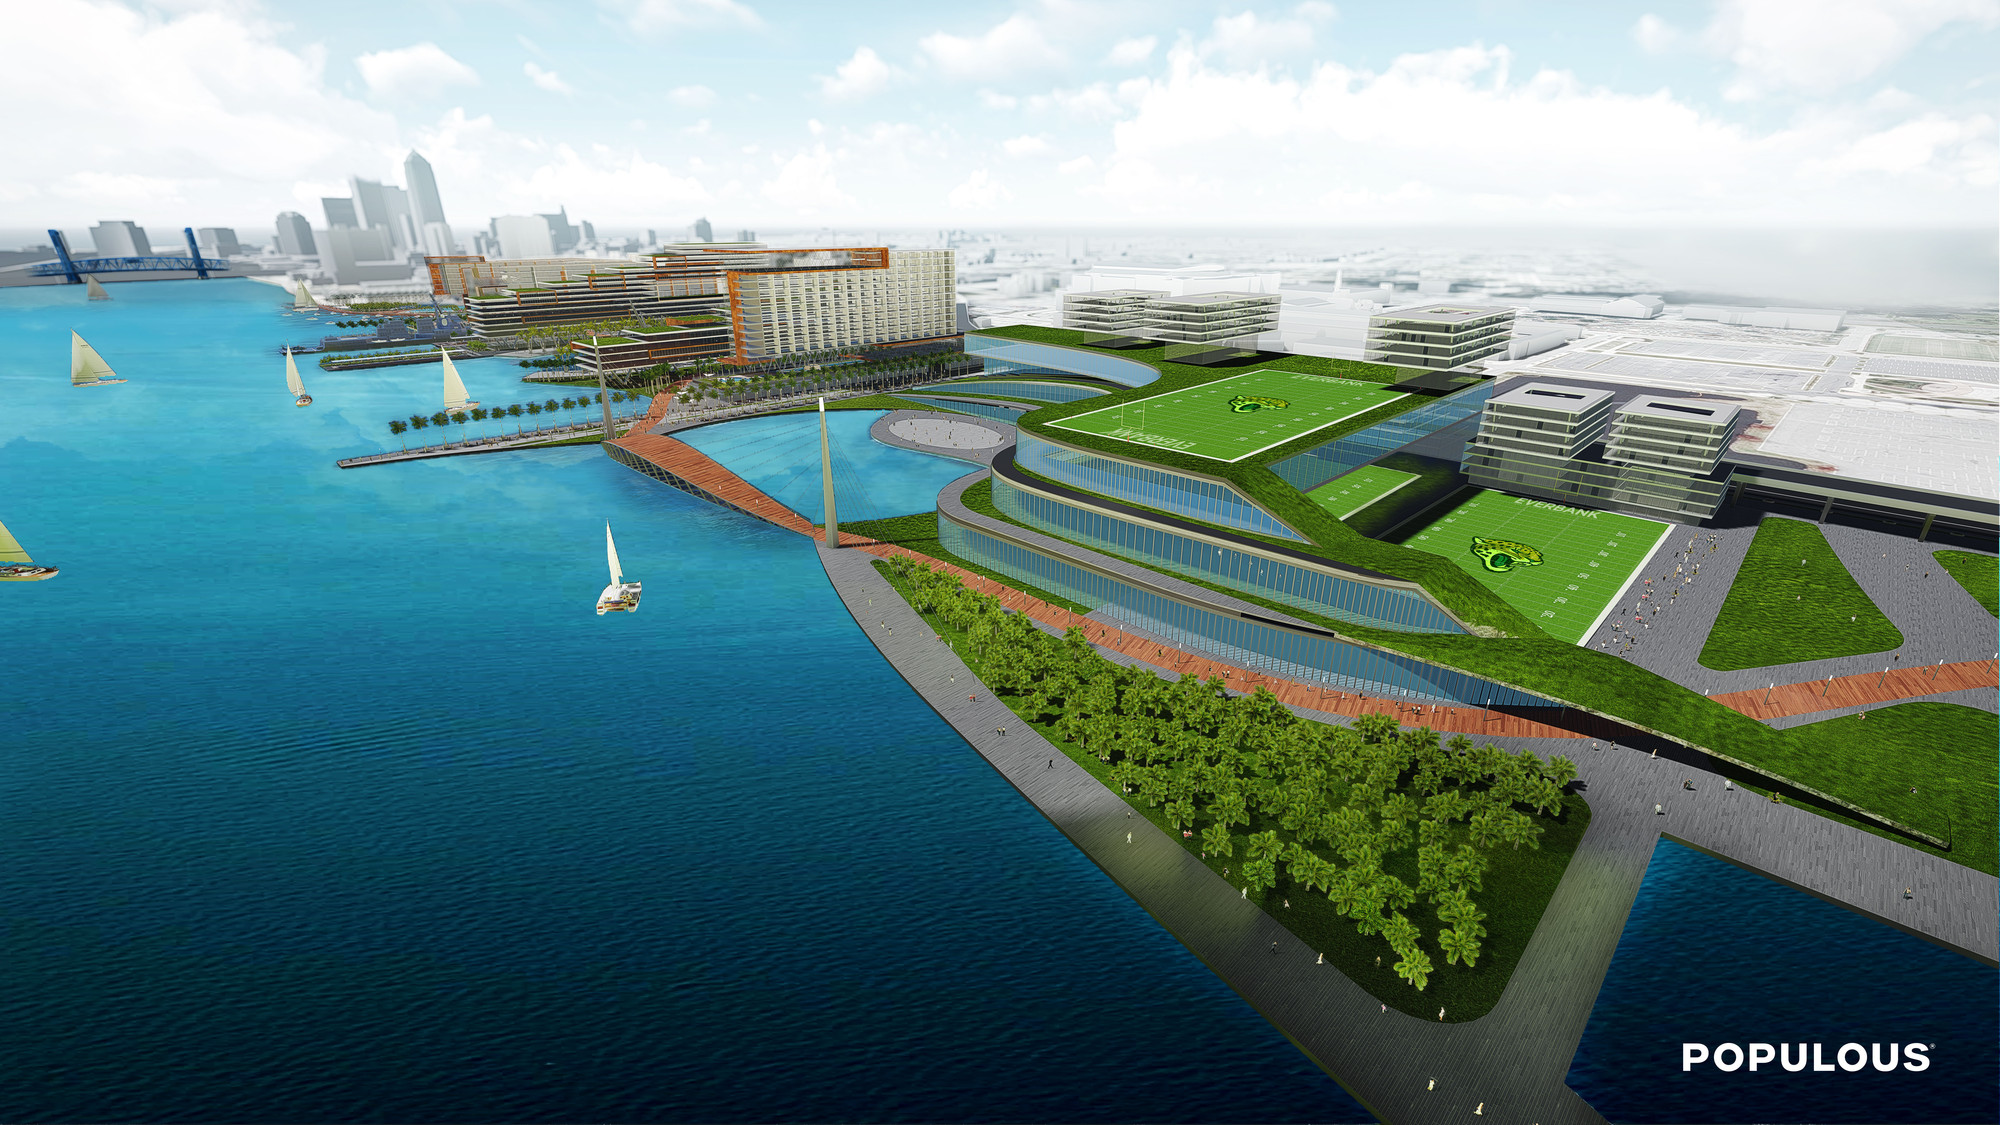 Shipyards aerial view. Image Courtesy of Populous